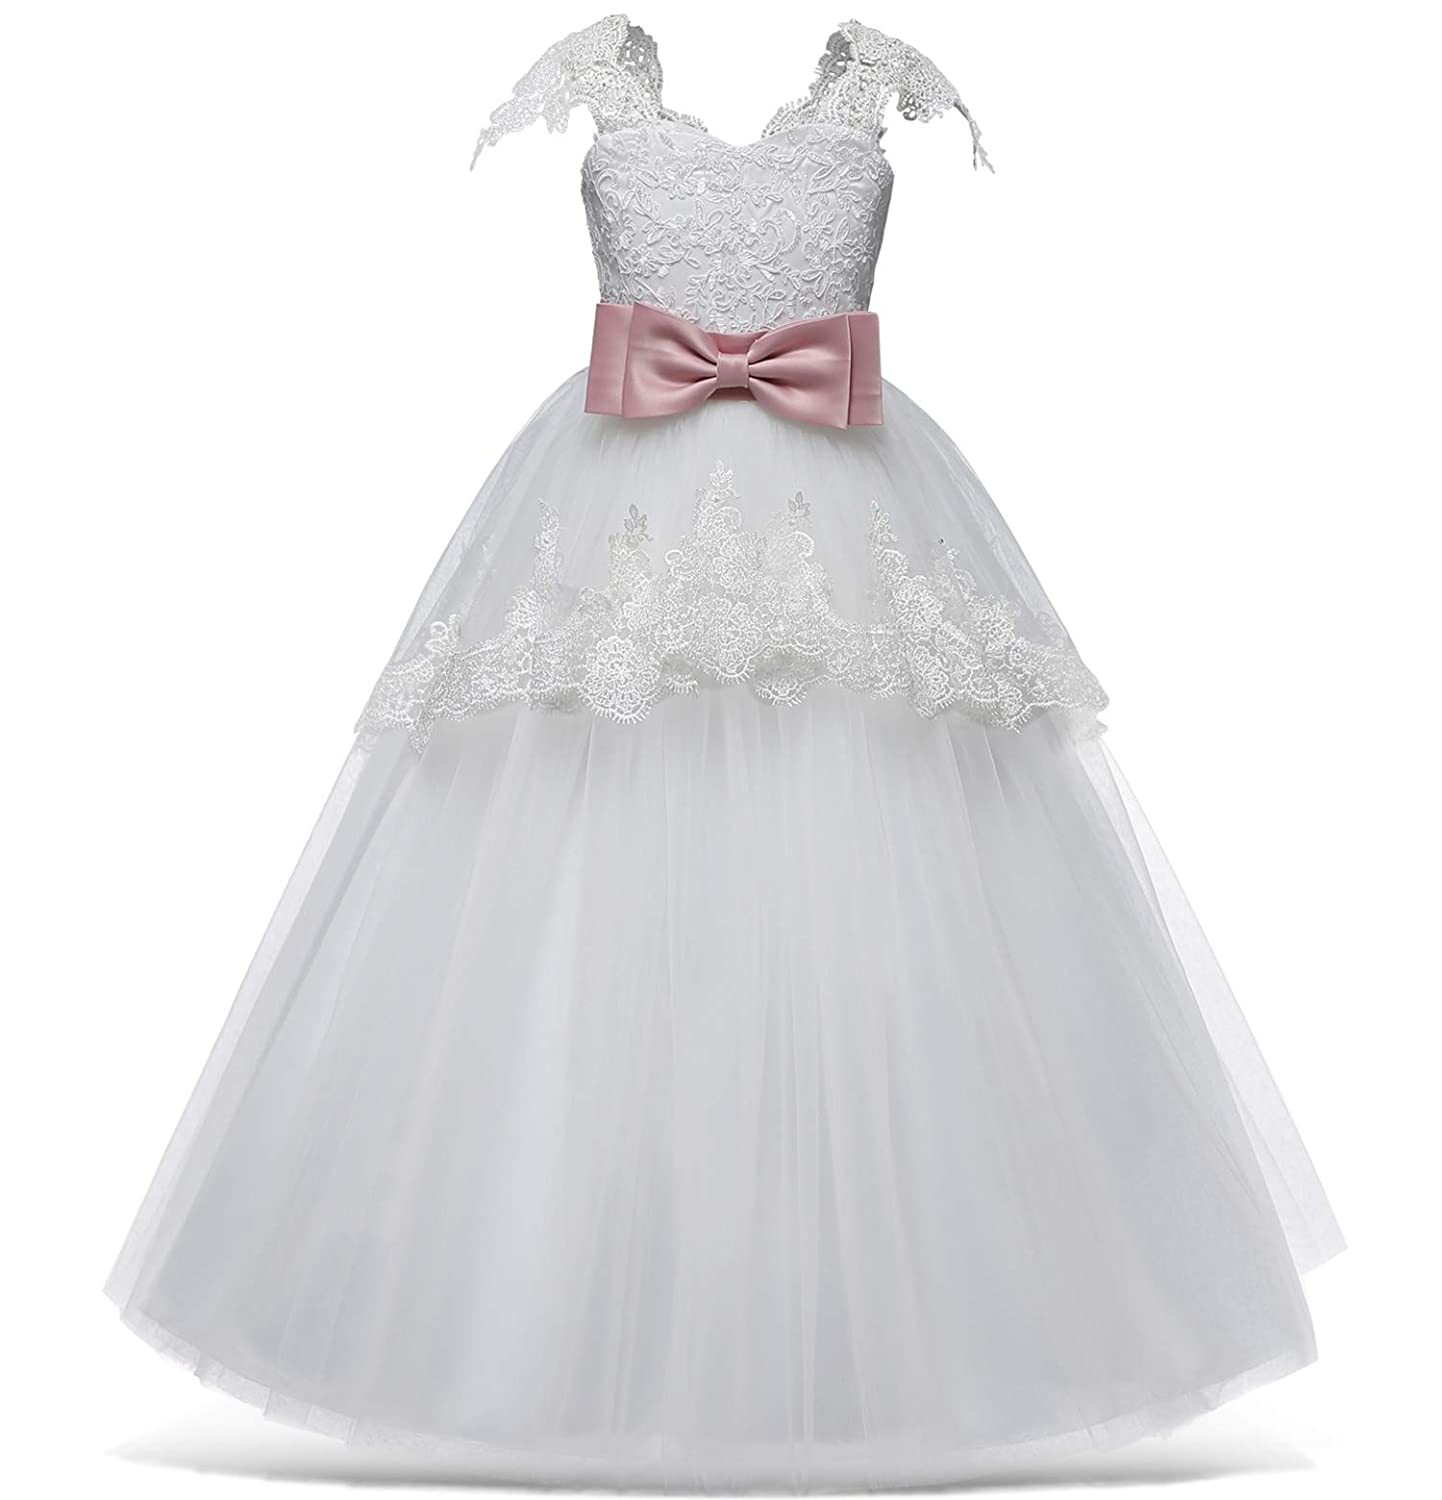 23c3375664e4 NNJXD Girls Princess Pageant Dress Kids Prom Ball Gowns Wedding ...